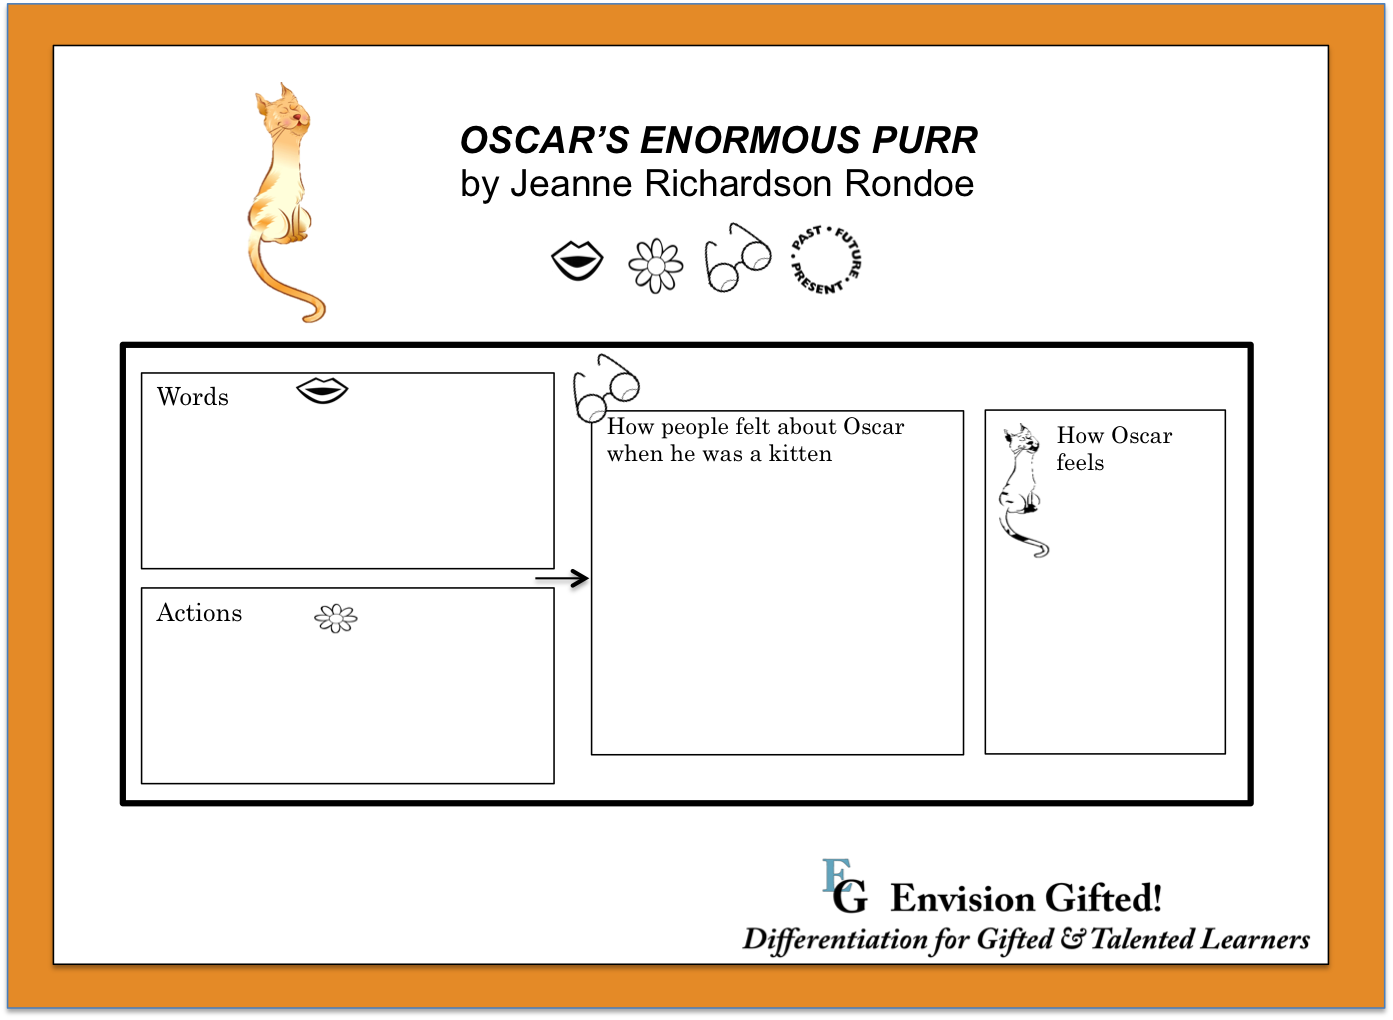 Envision Gifted. Image of template for Oscar's Enormous Purr